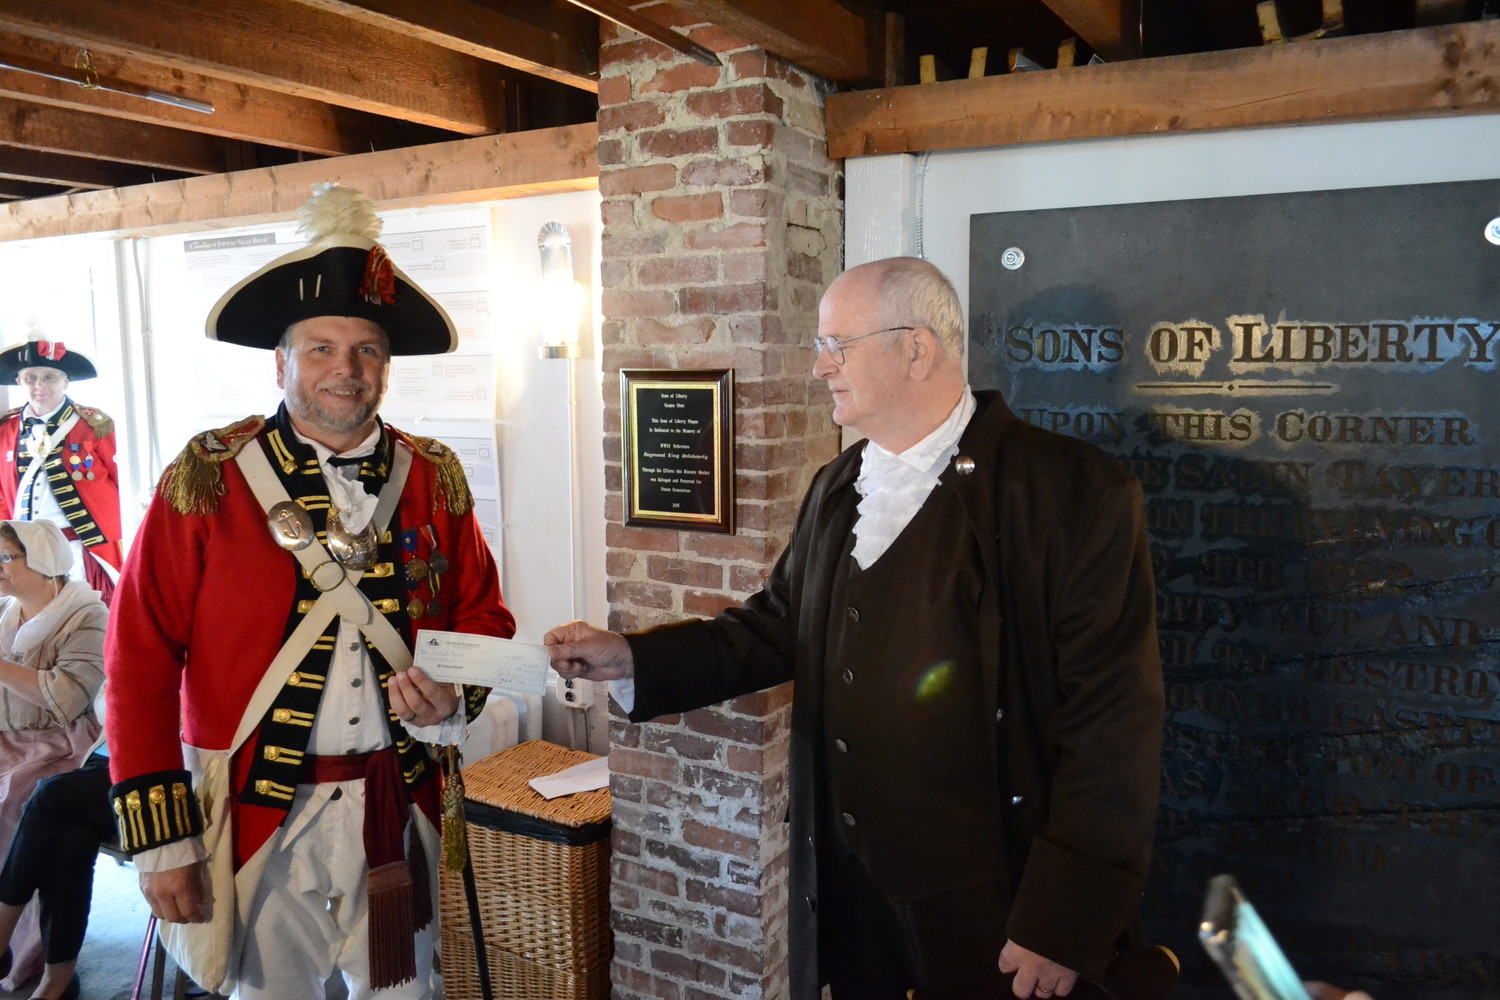 TO HISTORY: Dr. John Concannon presents a check for $500 to Colonel Ron Barnes, Commander of the Pawtuxet Rangers, towards the cost of moving and mounting the heavy historic plaque.